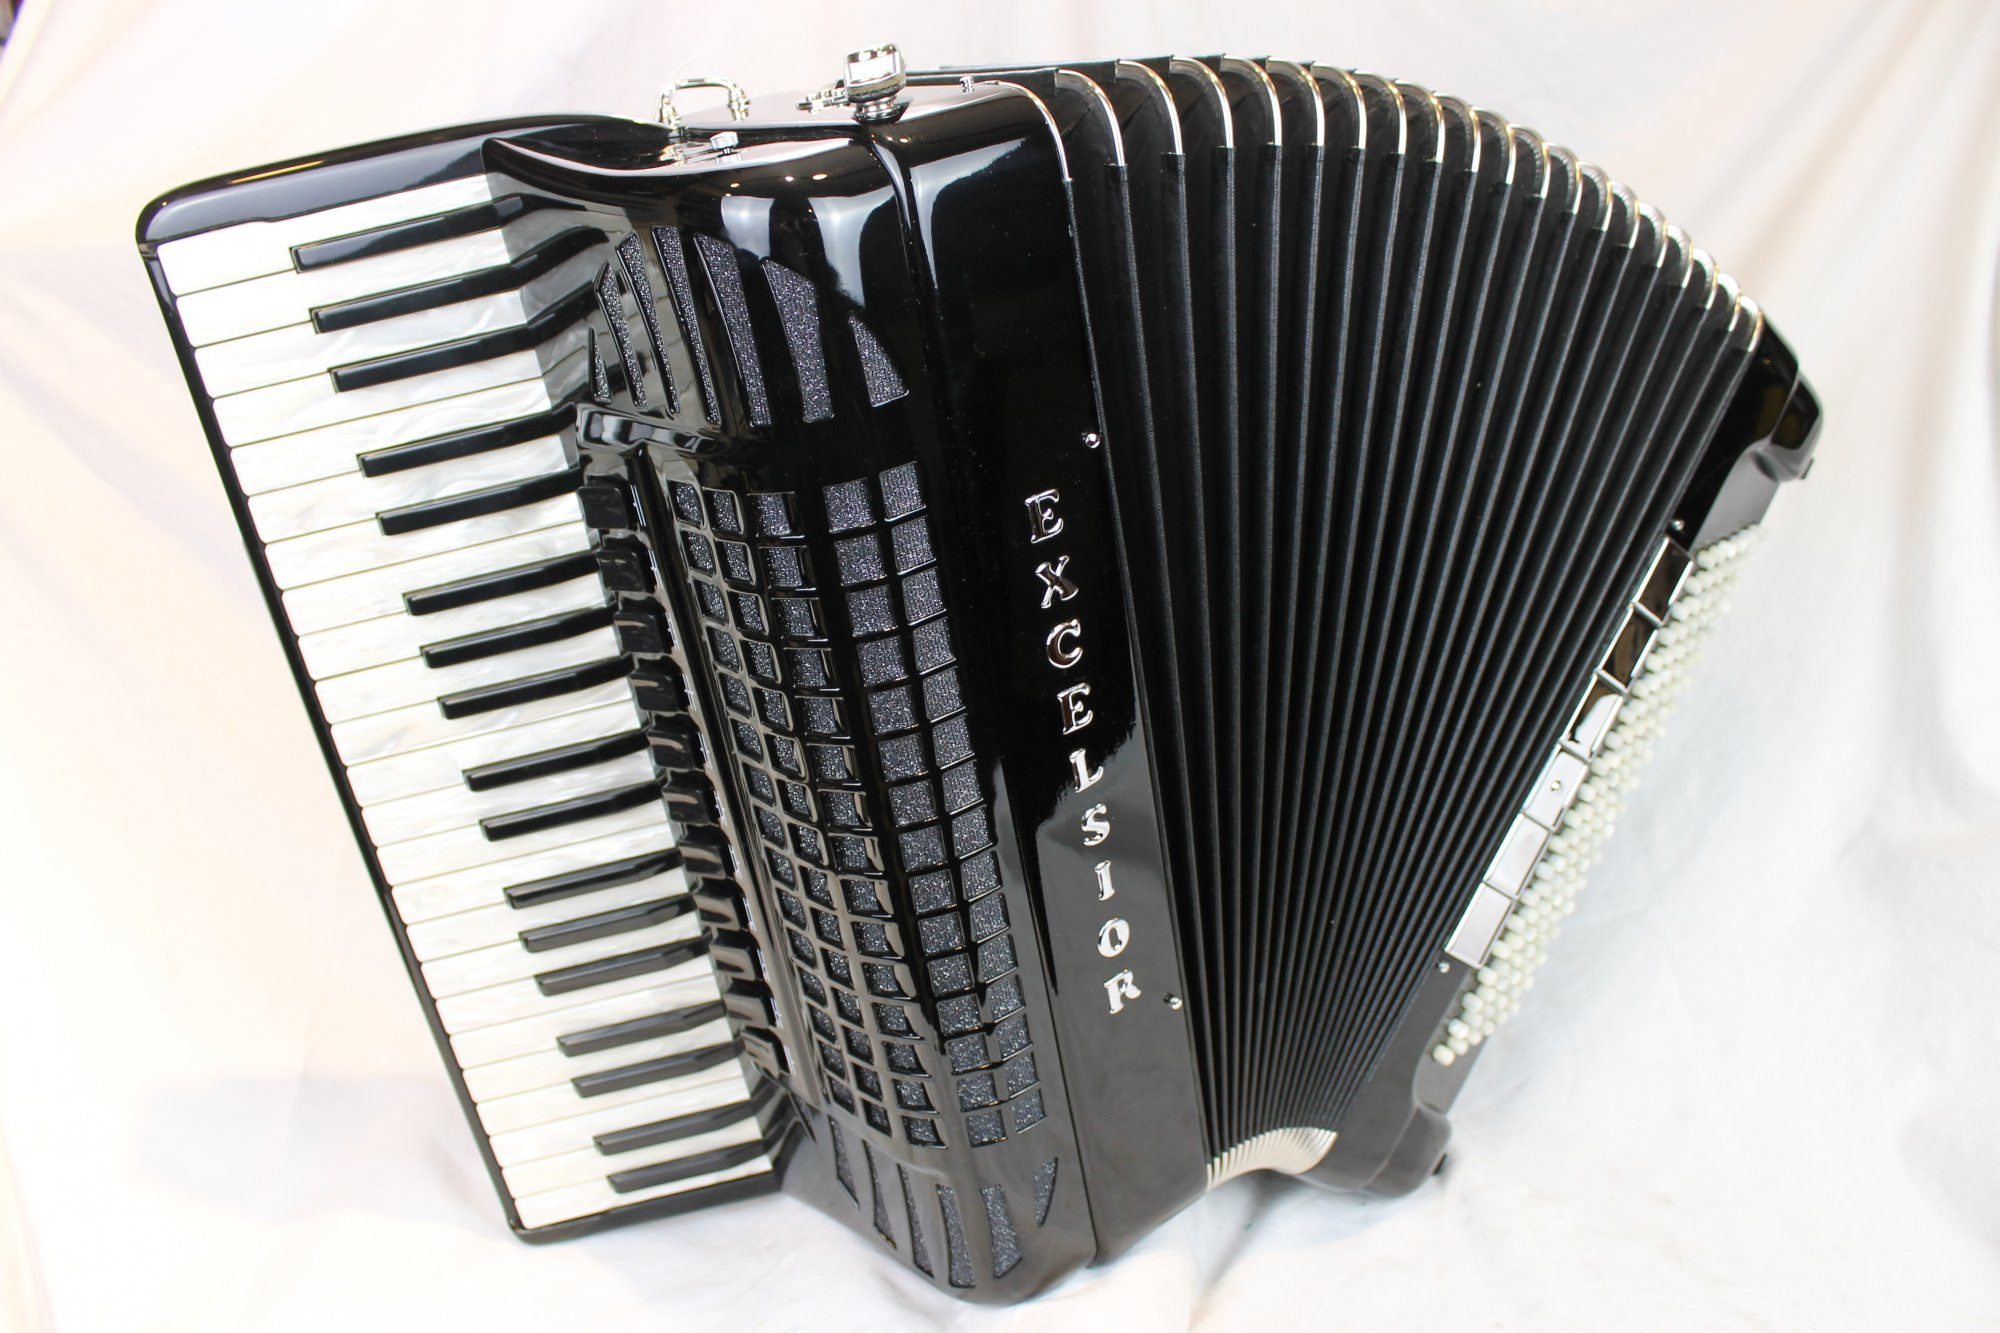 4165 - Like New Black Excelsior Magnante Piano Accordion LMMH 41 120